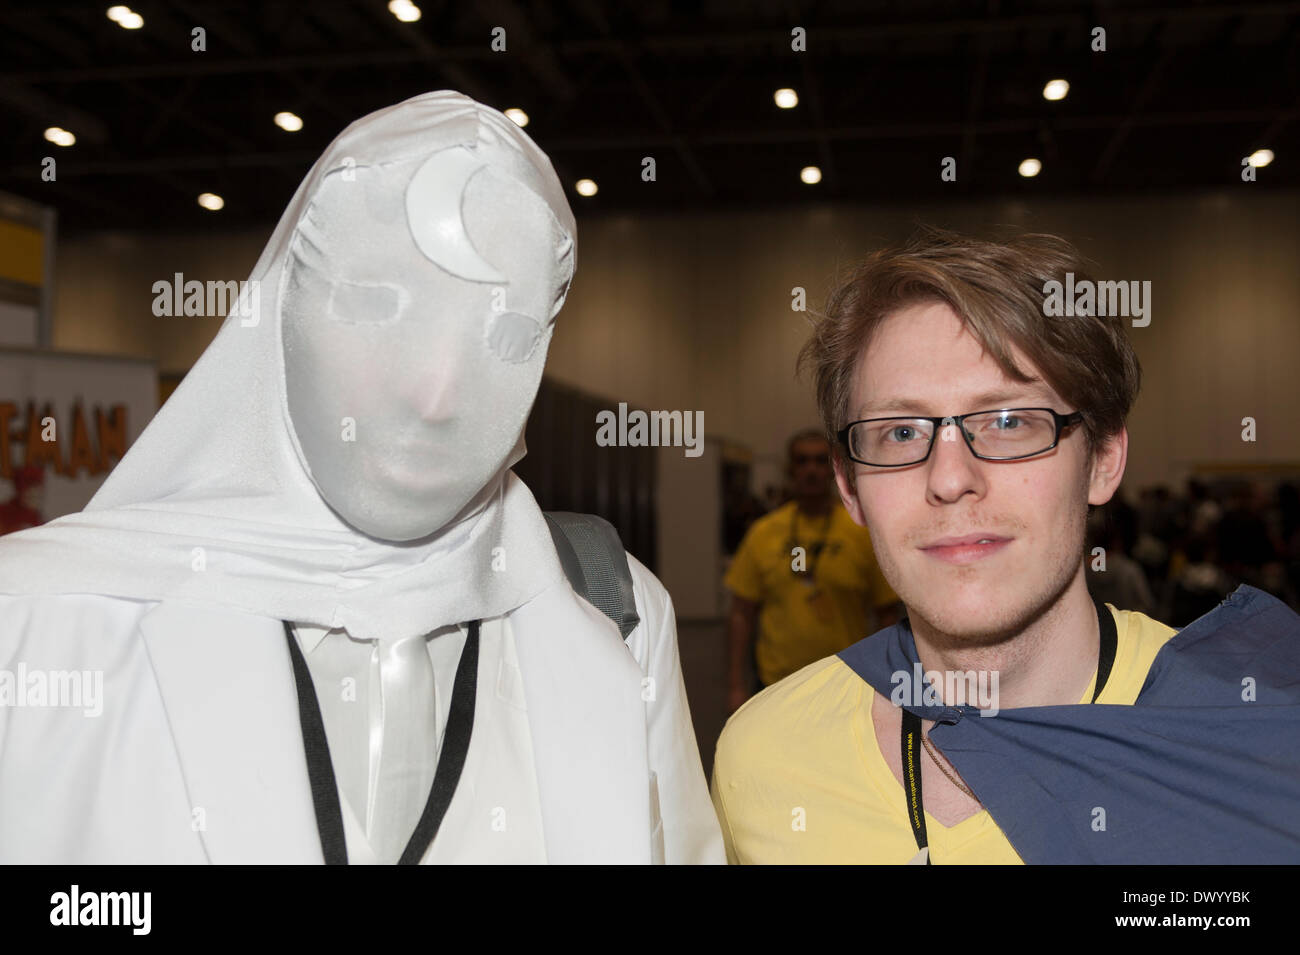 15.3.14. ExCel, London UK. Cosplay visitors at ExCel London on the opening day of the third London Super Comic Convention - Stock Image